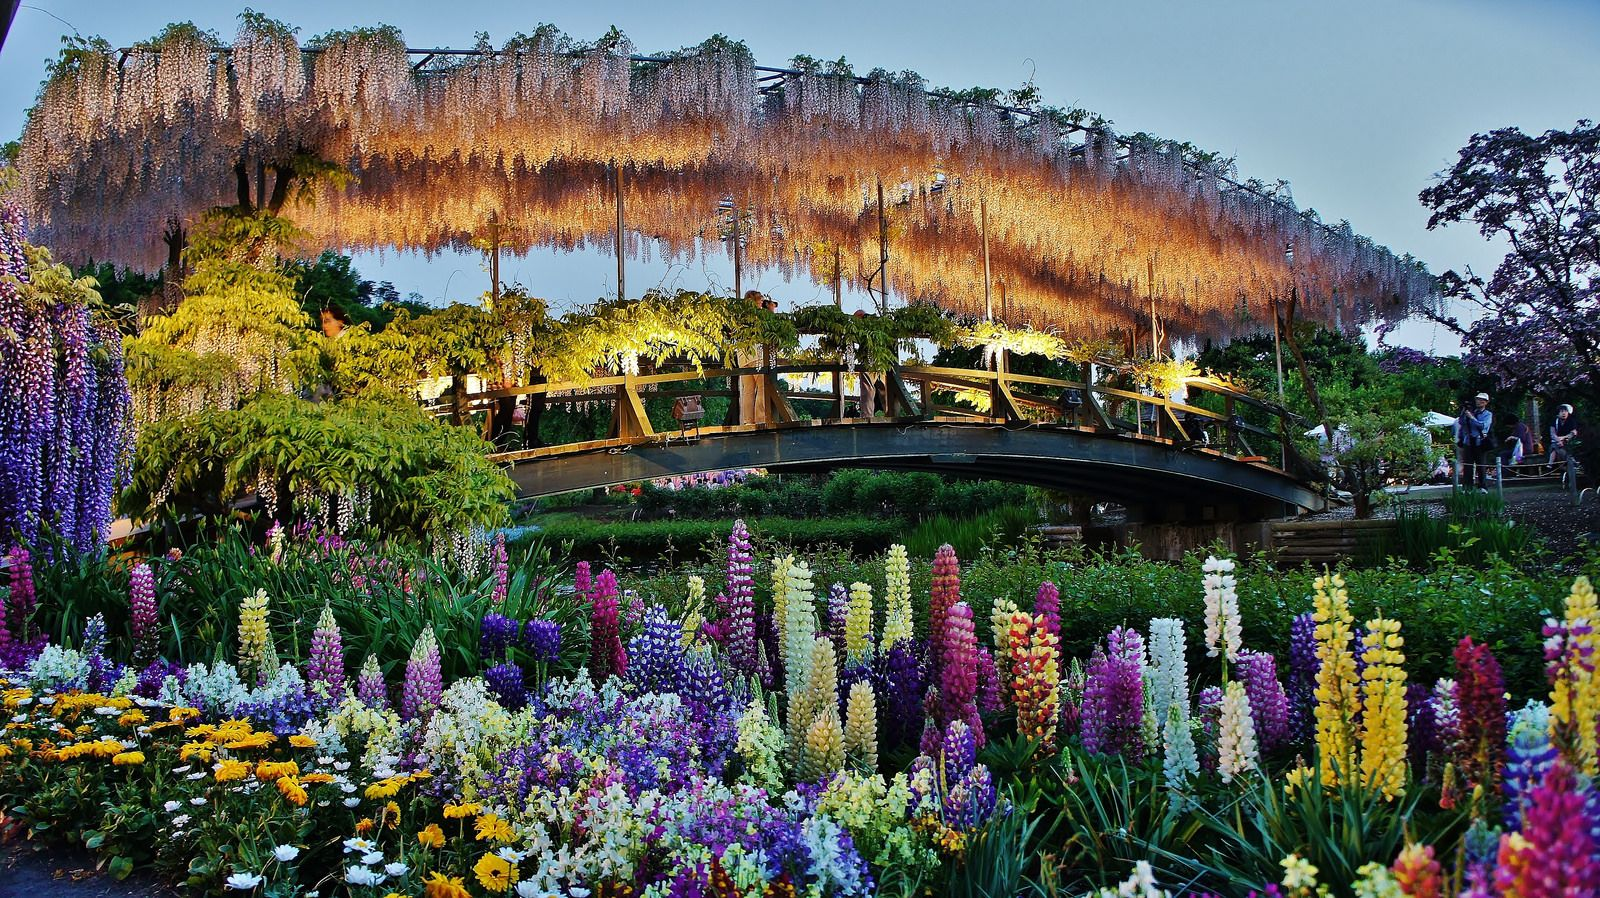 Ashikaga Flower Park Beautiful Flowers Garden Day Trips From Tokyo Ashikaga